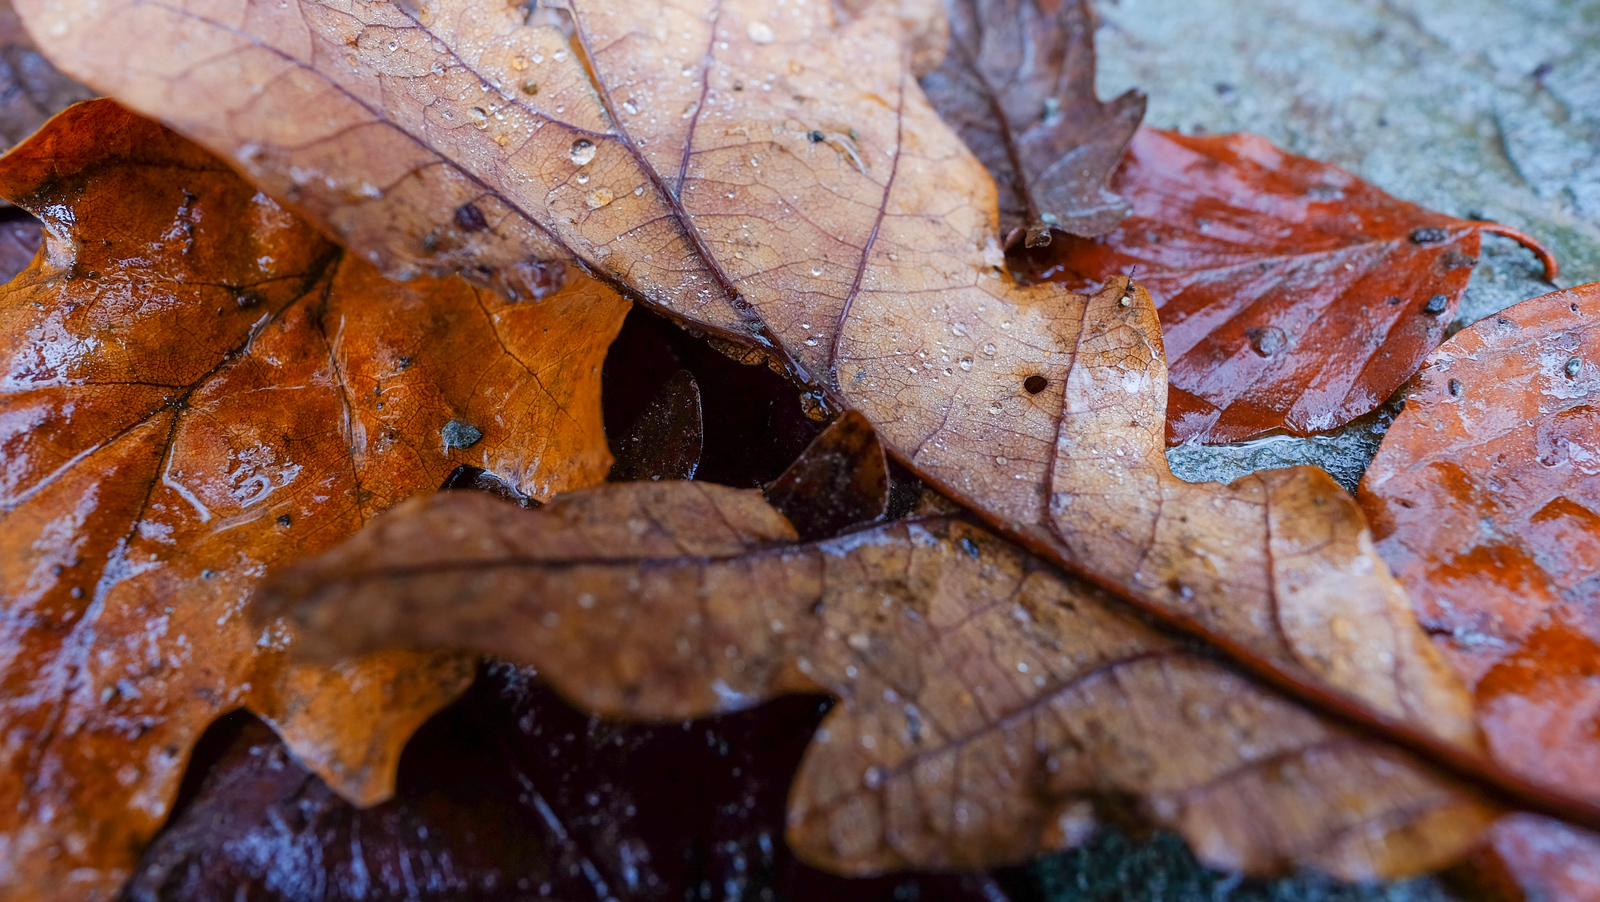 fujifilm xf16mm review - close up shot of leaves